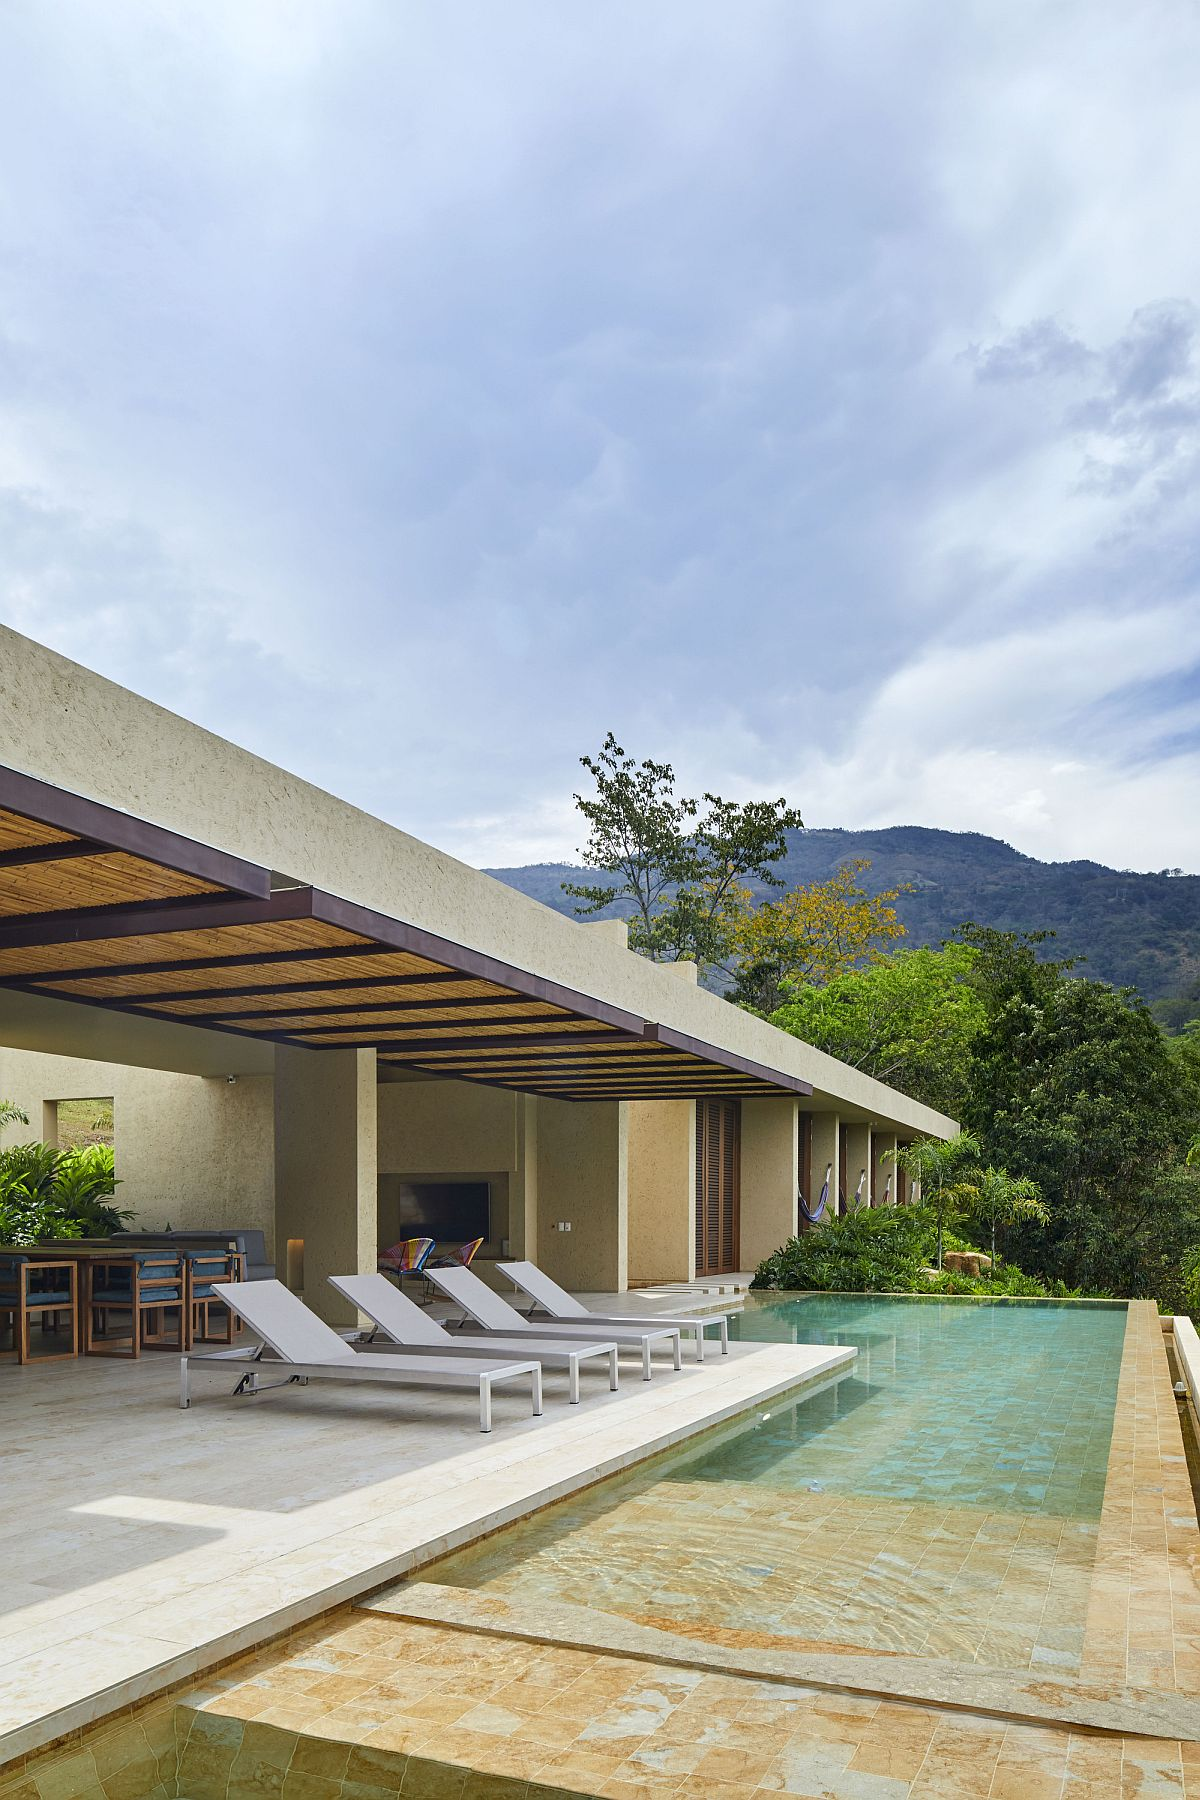 Fabulous deck and pool area of the house are directly connected with the open plan living space